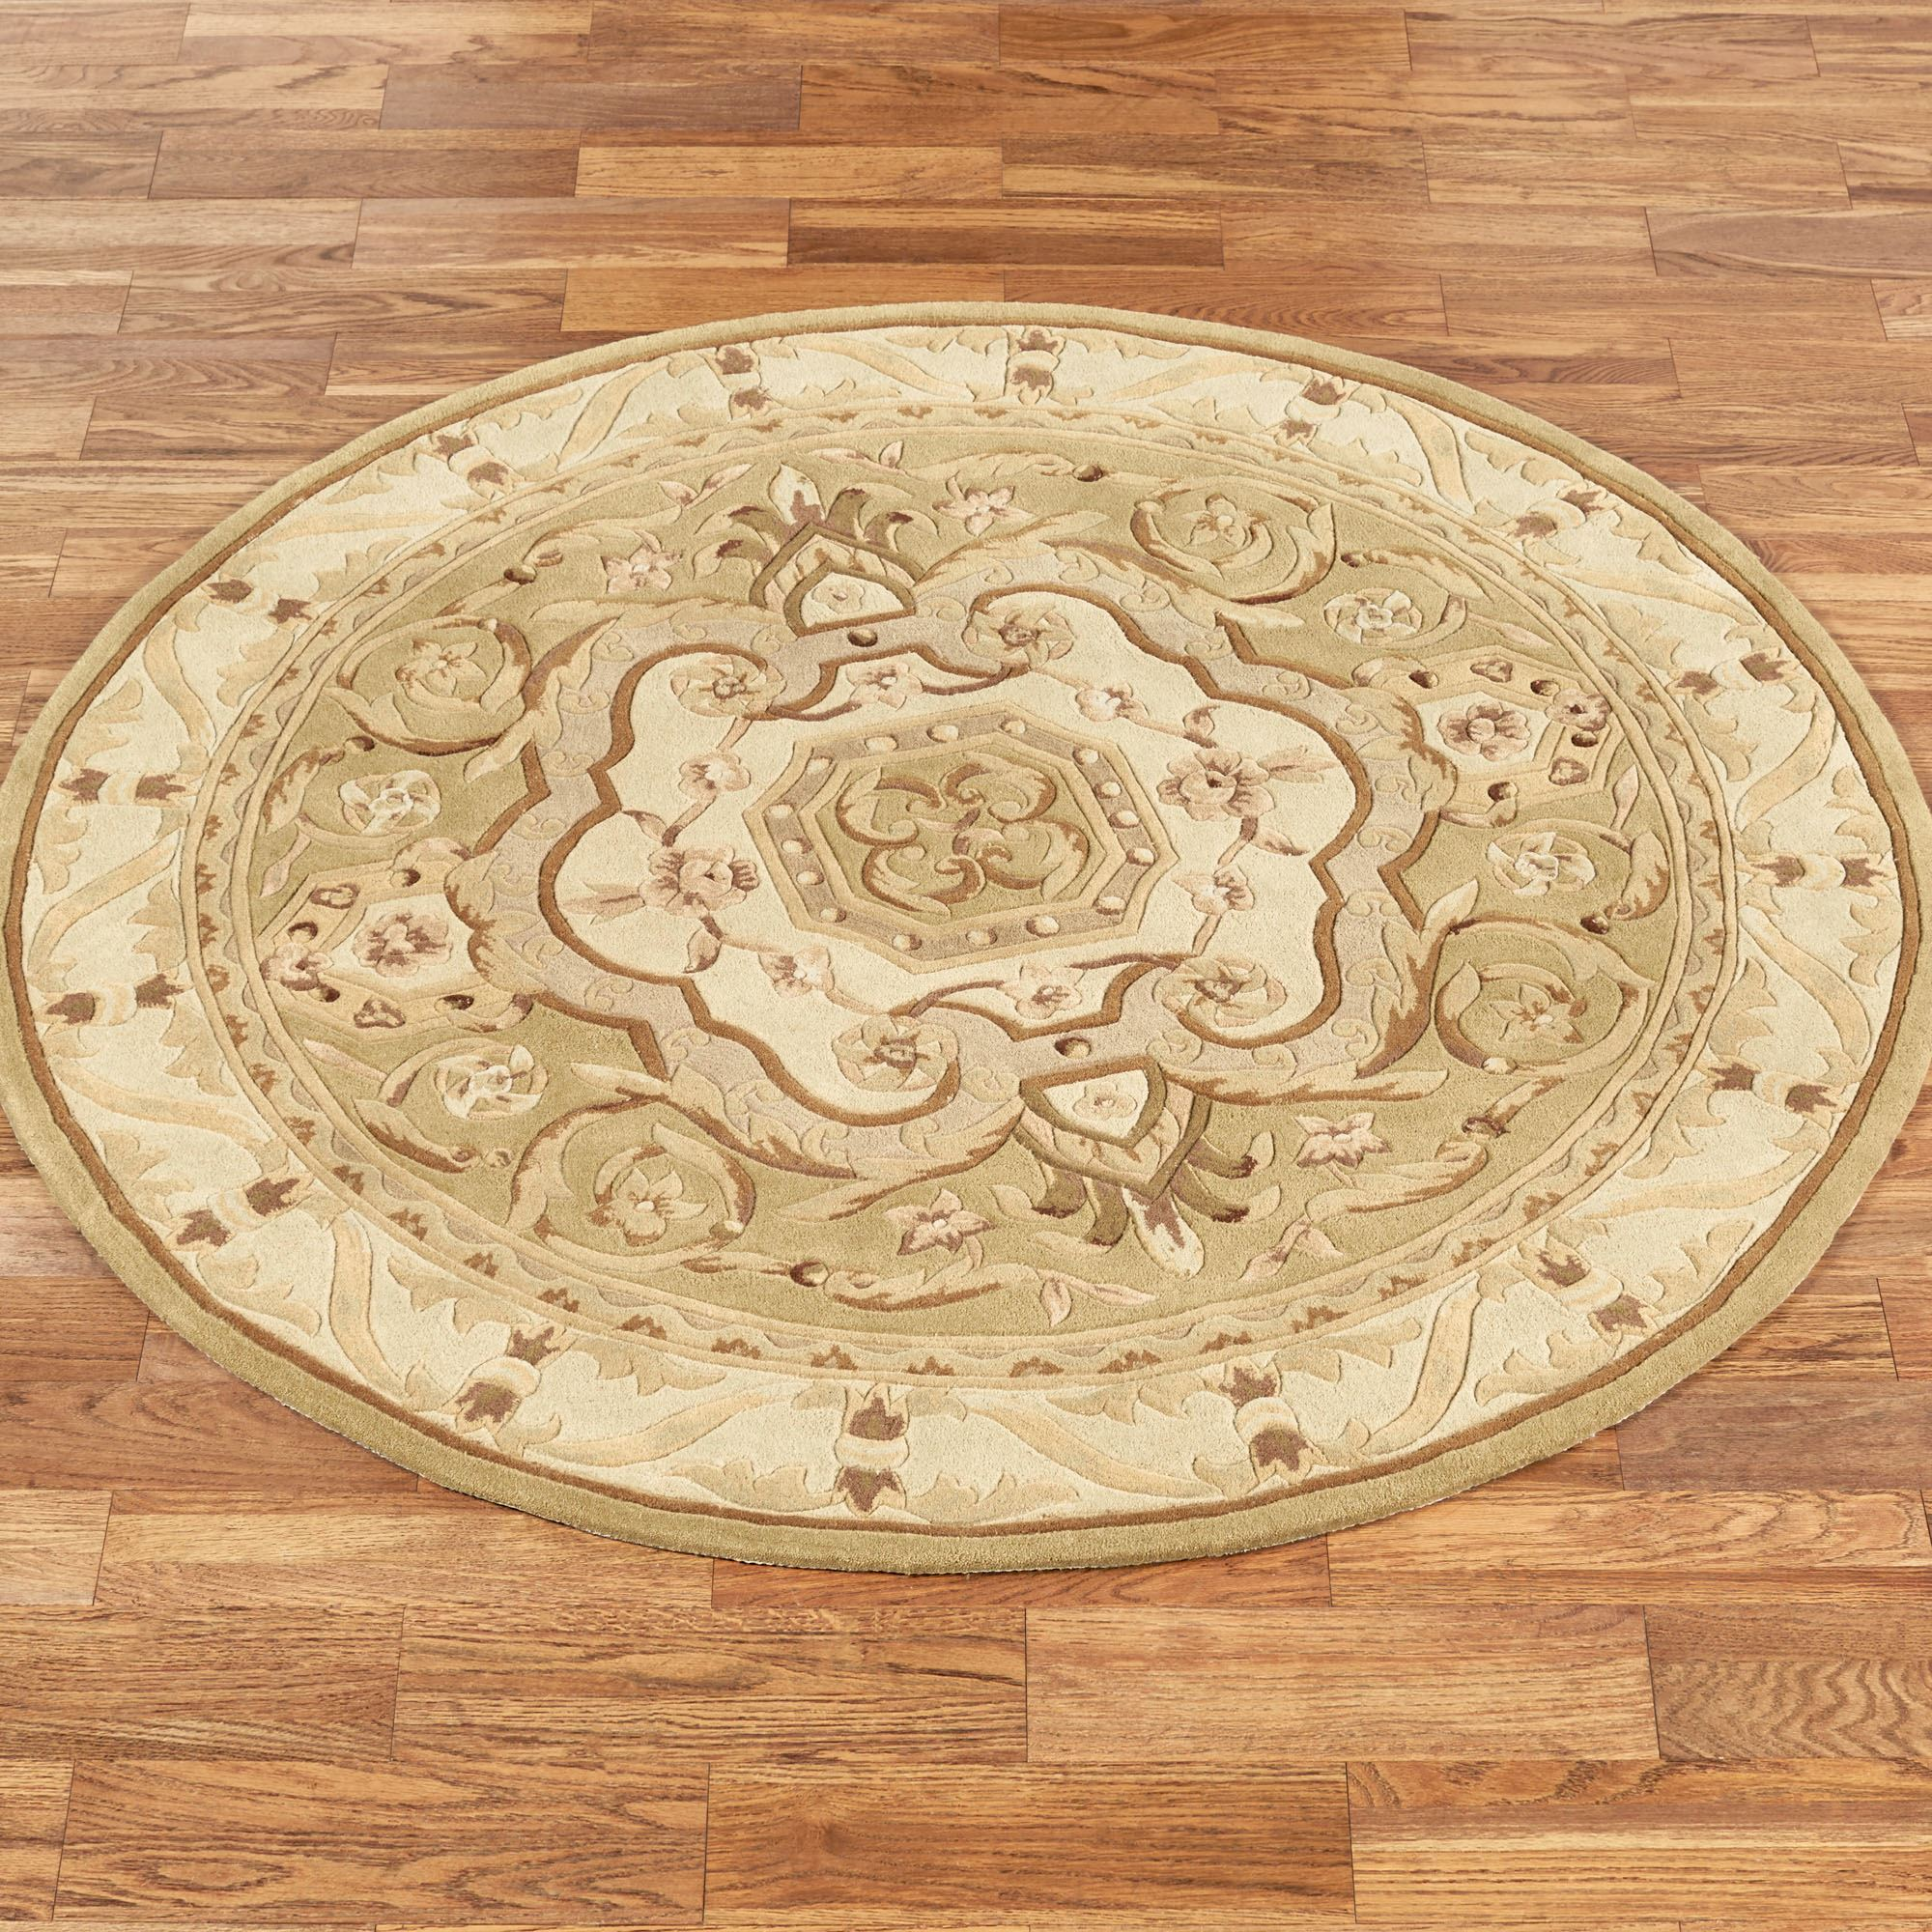 French Legacy Antique Gold Round Rug